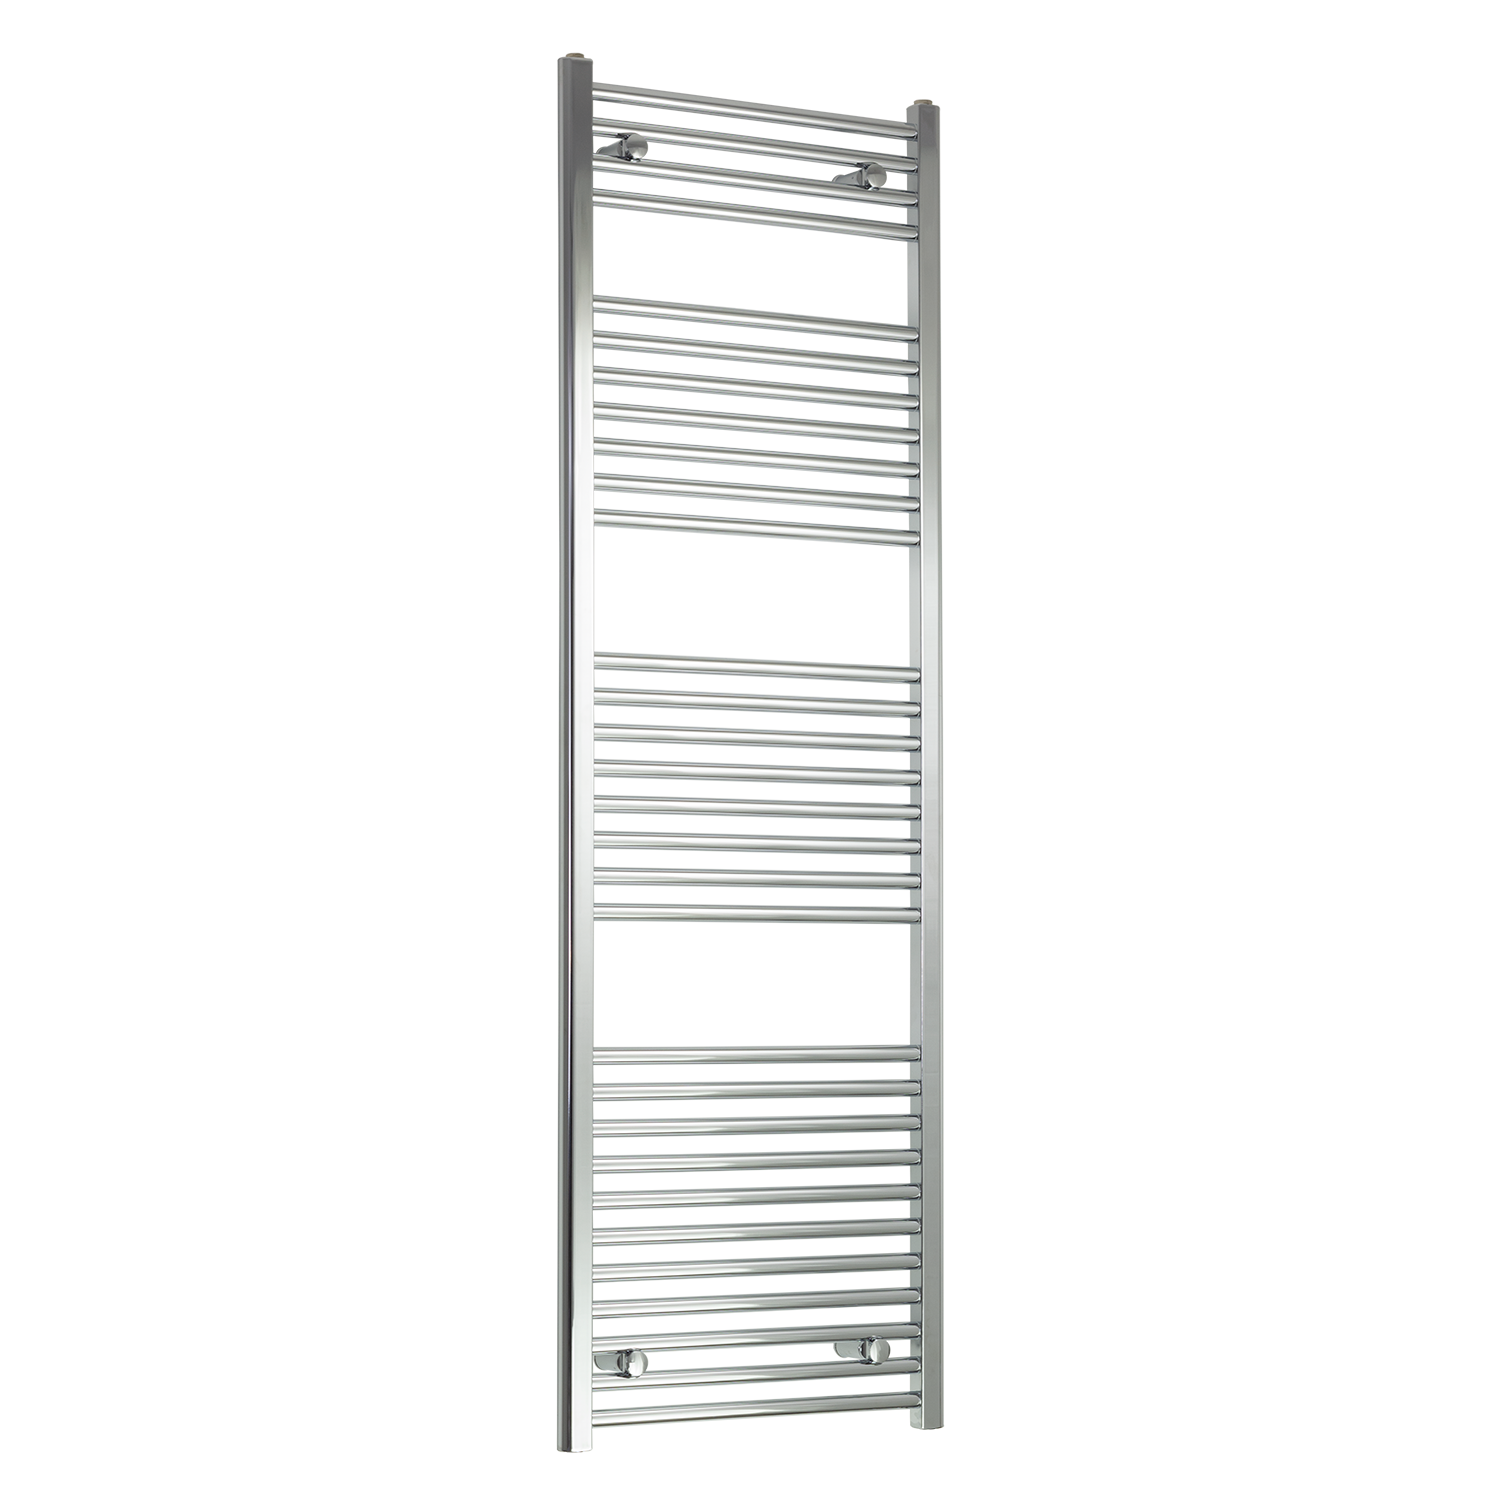 550mm Wide 1700mm High Straight Chrome Heated Towel Rail Radiator HTR Central Heating,Towel Rail Only